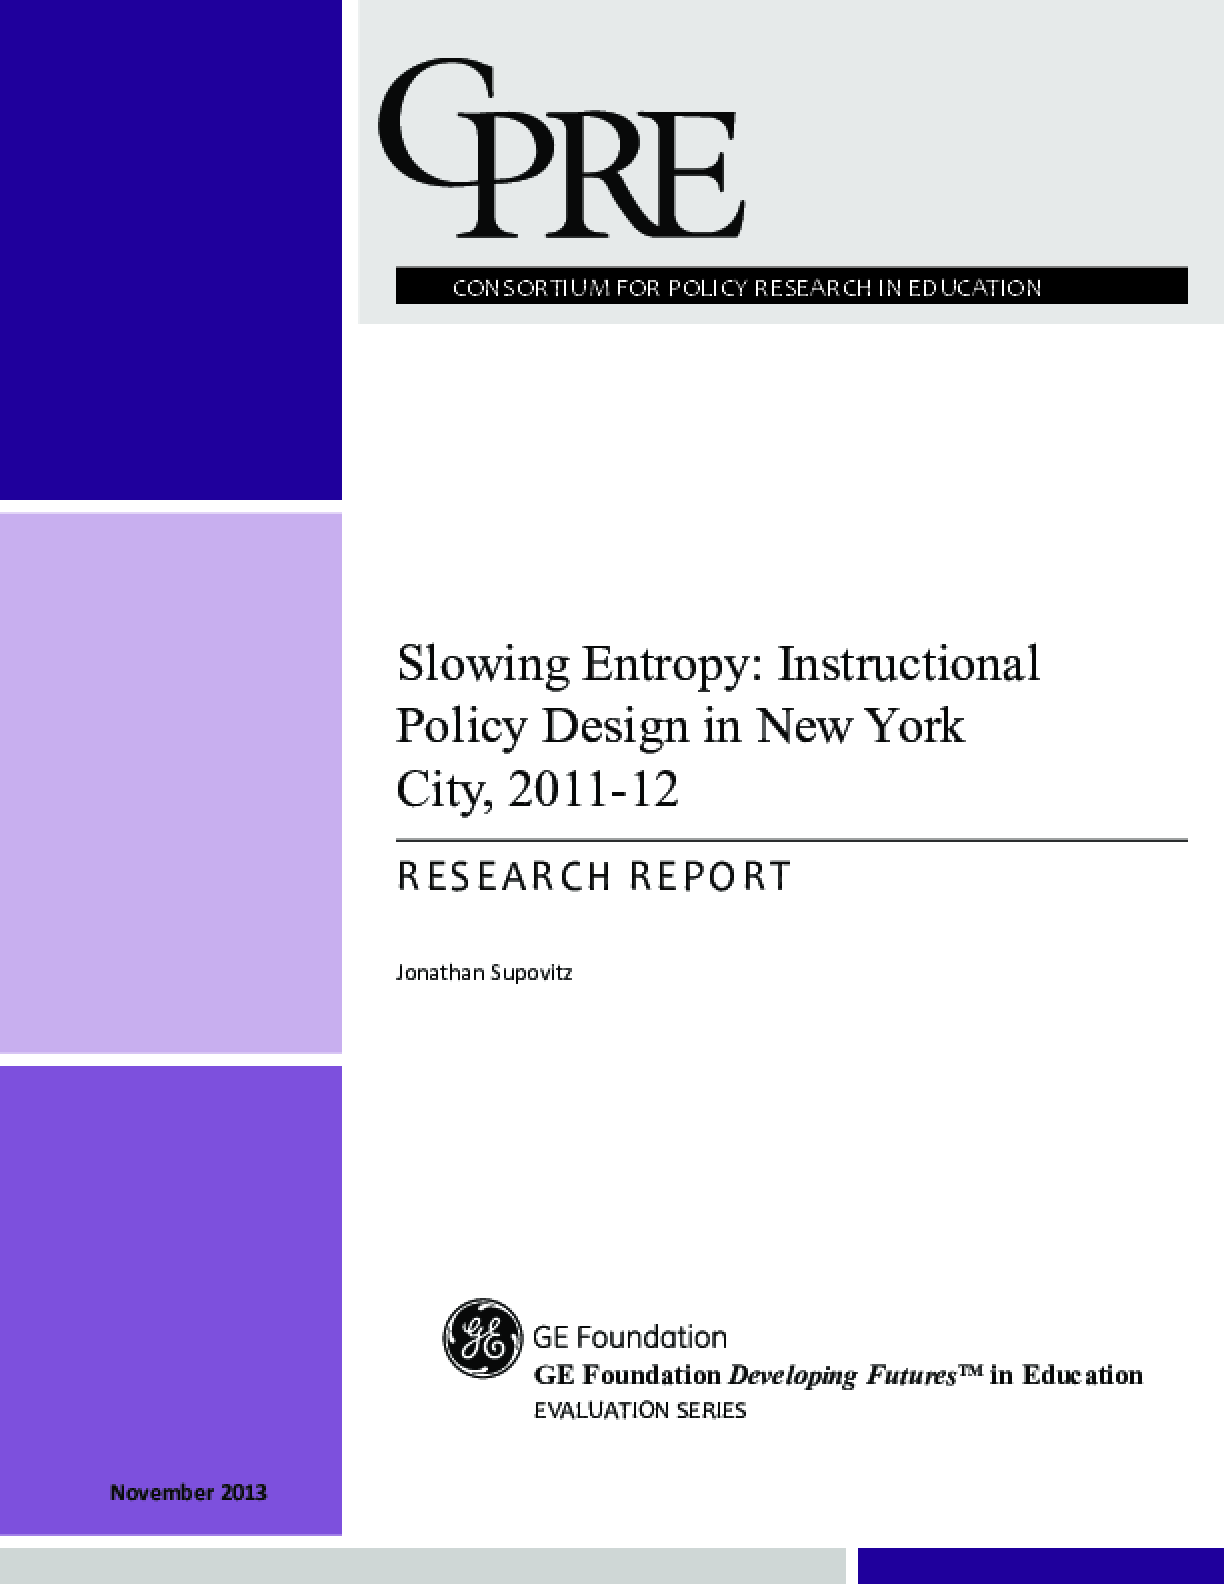 Slowing Entropy: Instructional Policy Design in New York City, 2011-12, Research Report